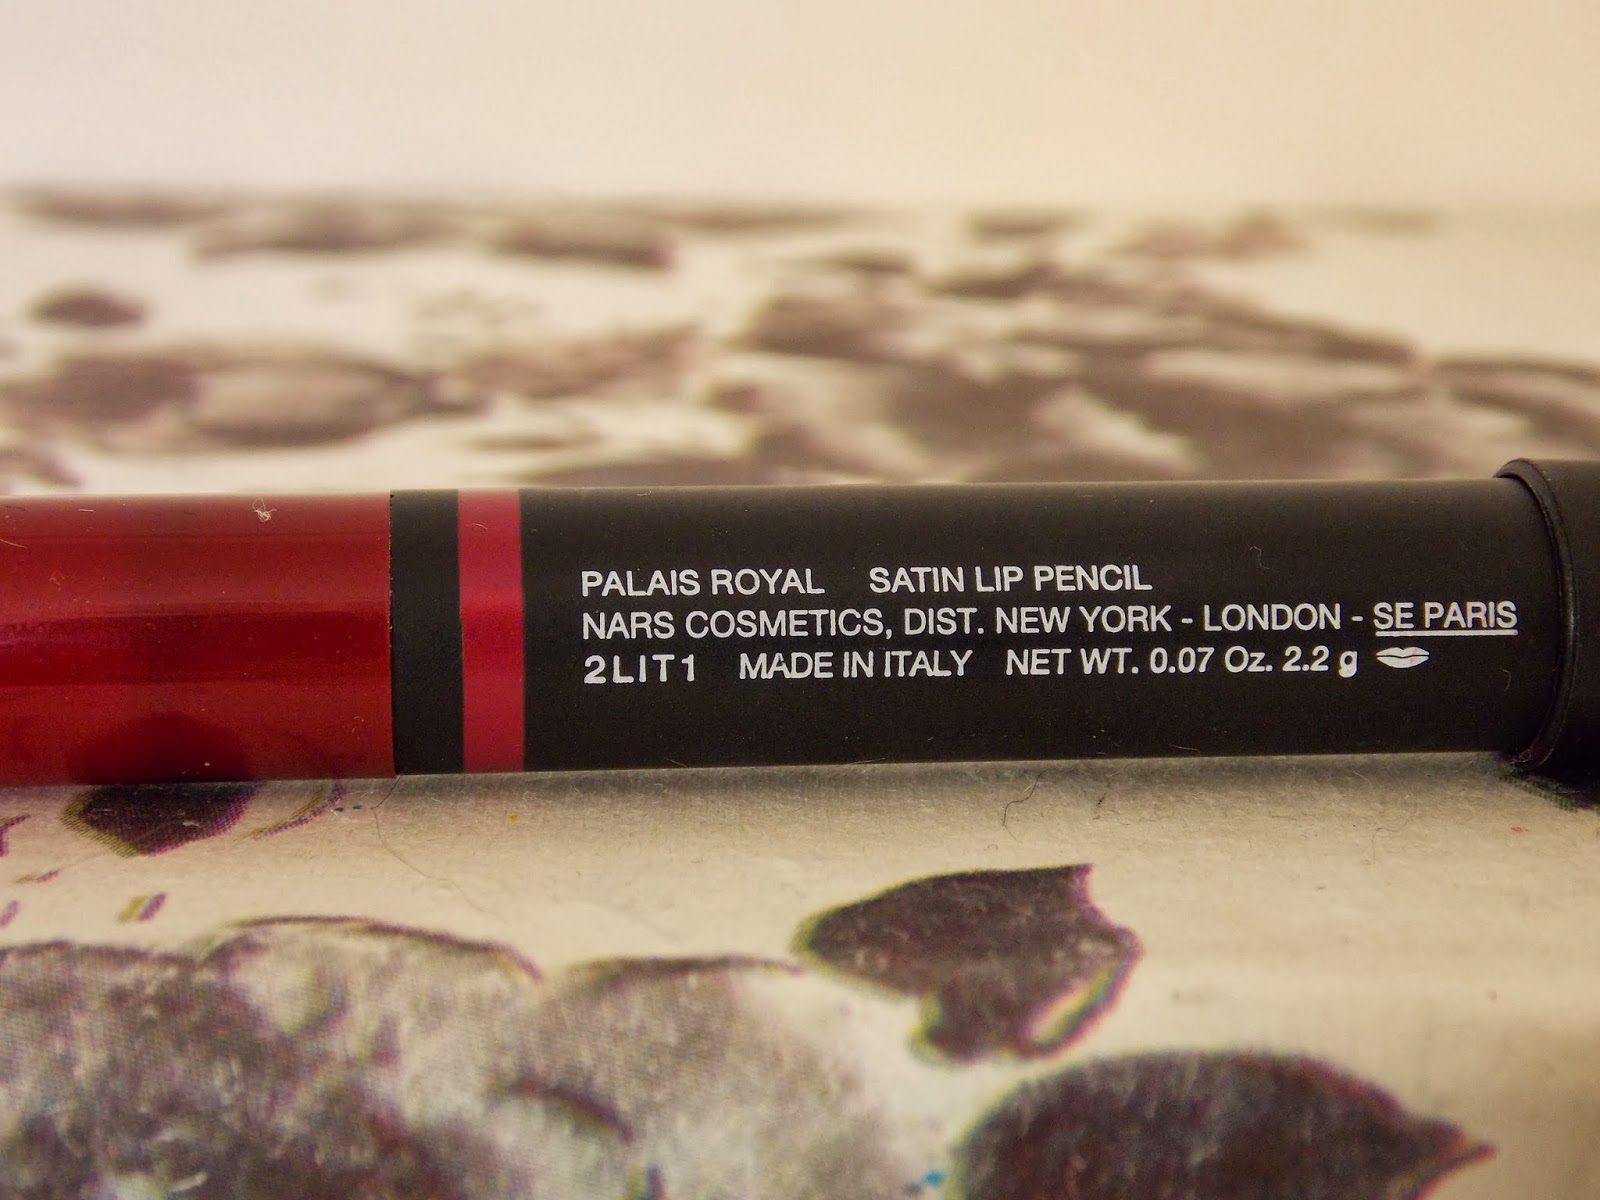 Nars Satin Lip Pencil in Palais Royal